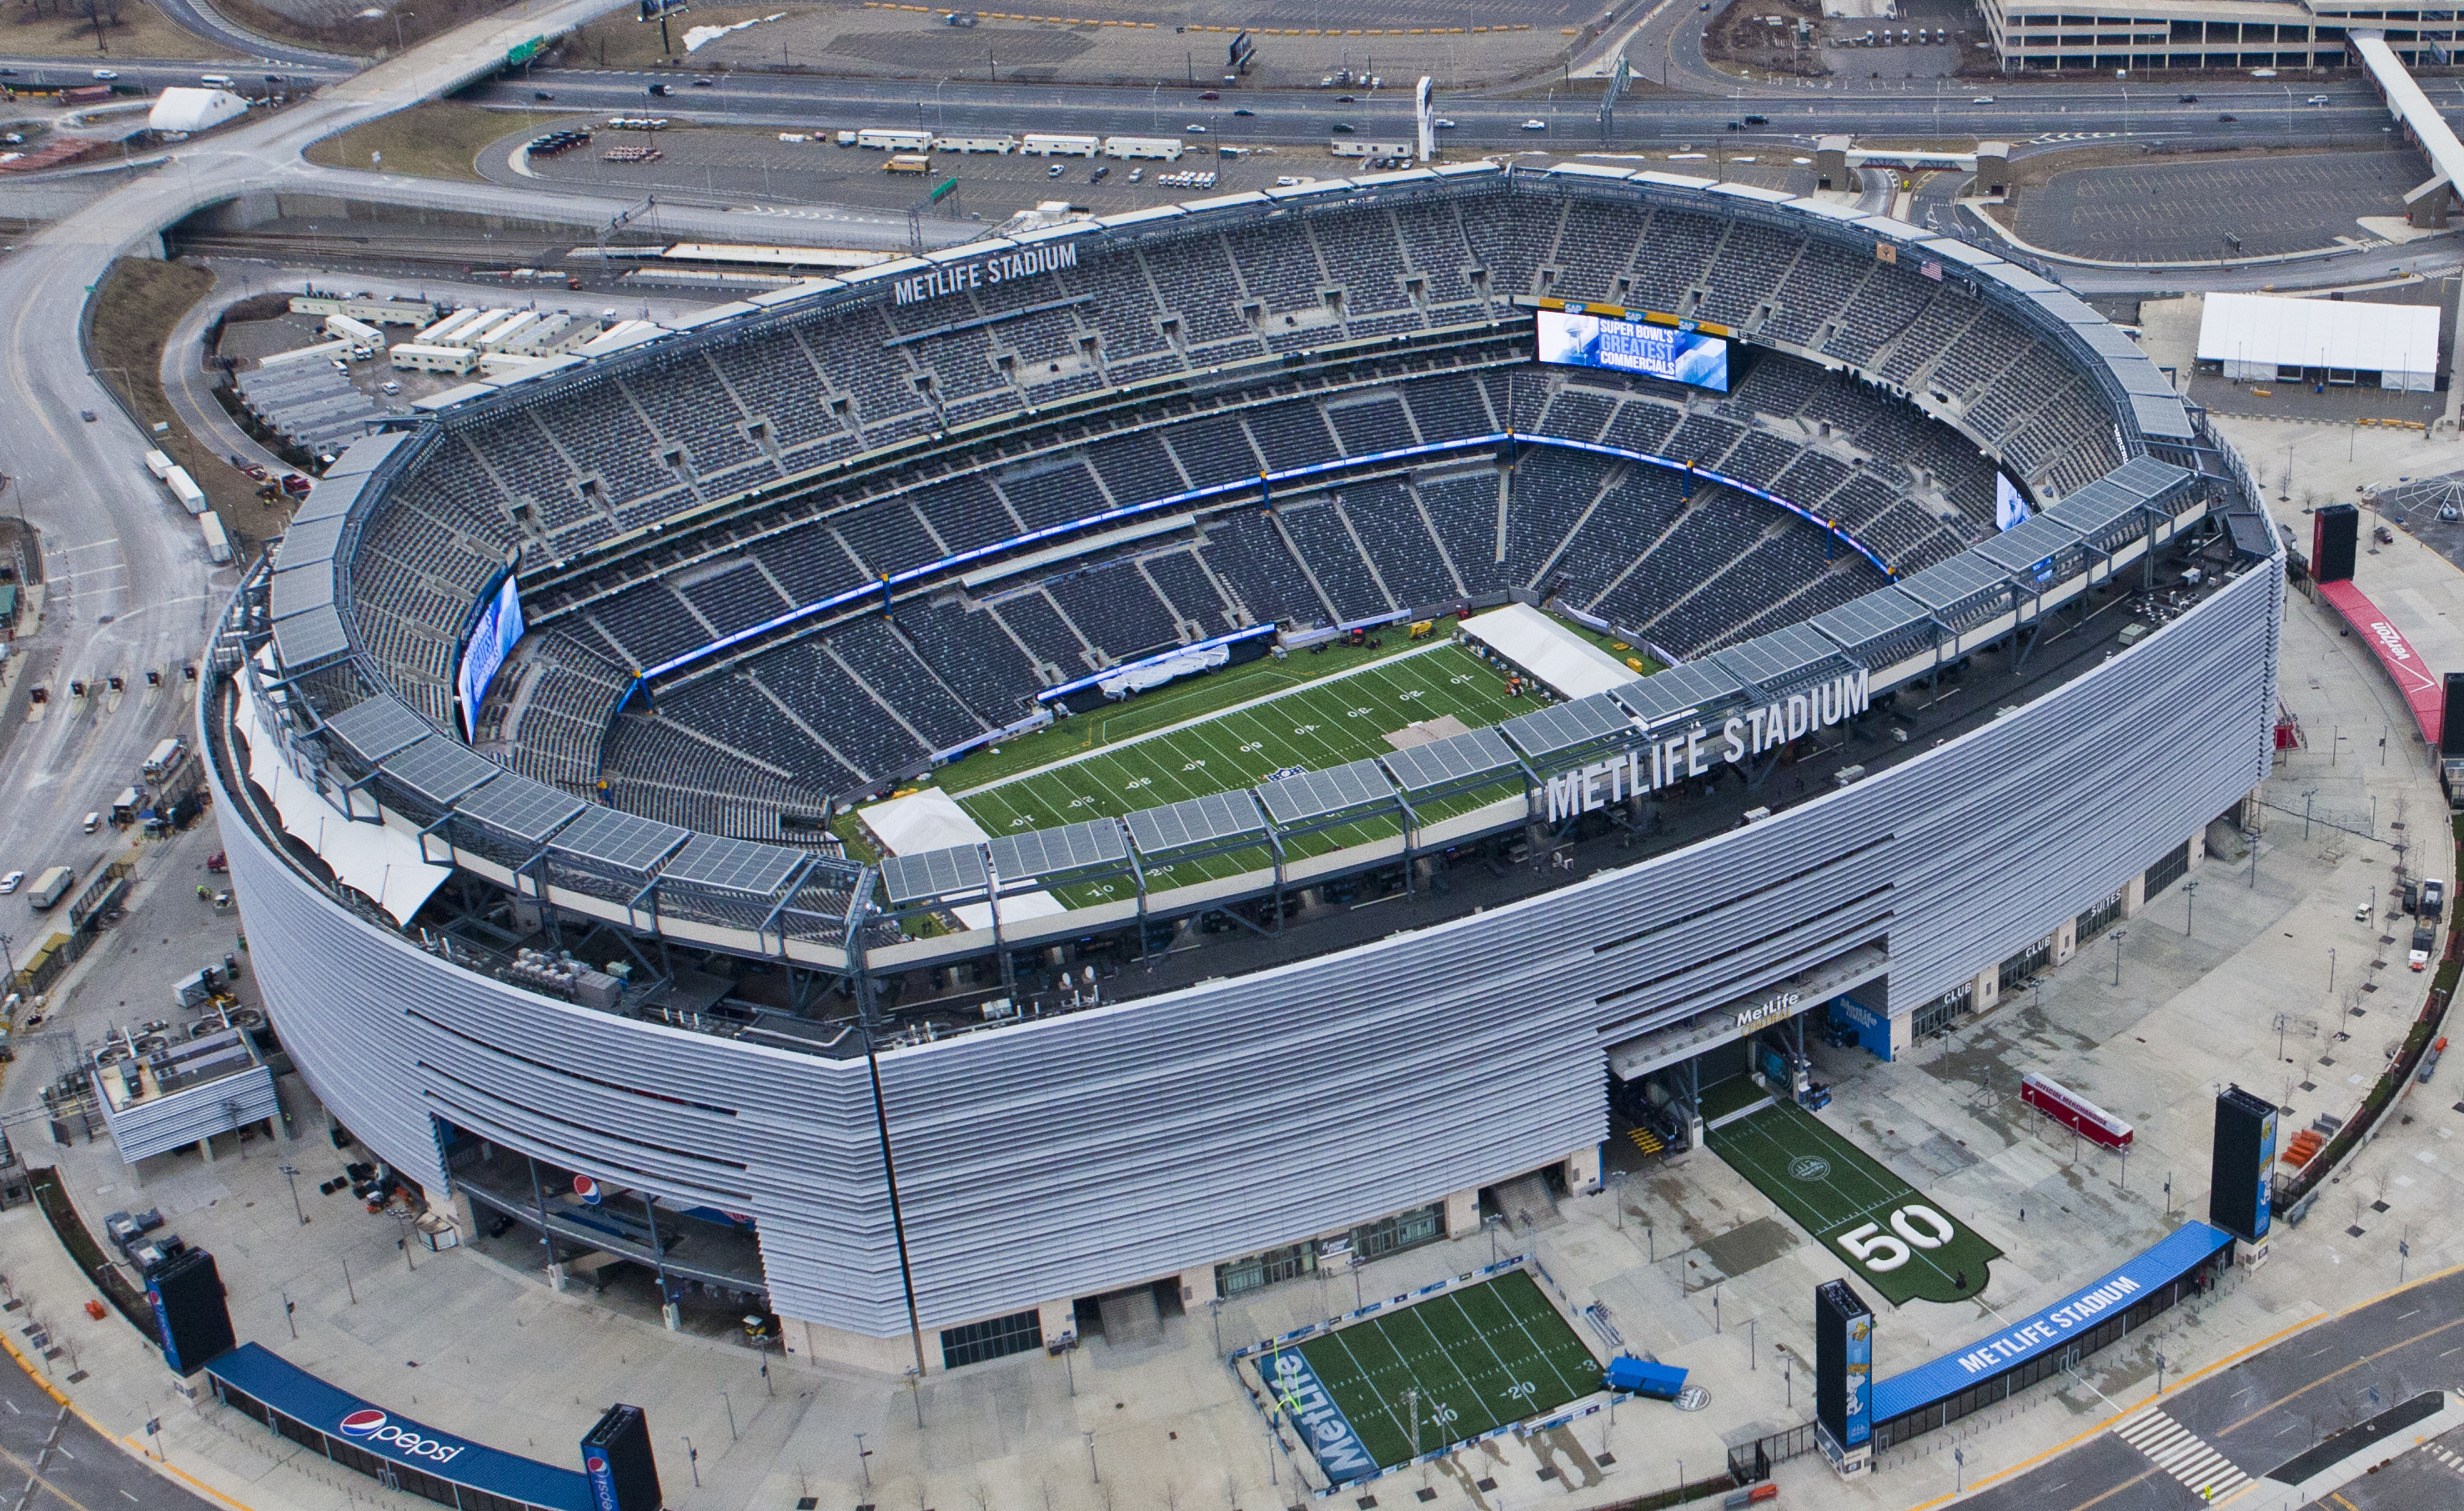 MetLife Stadium, home of the New York Jets